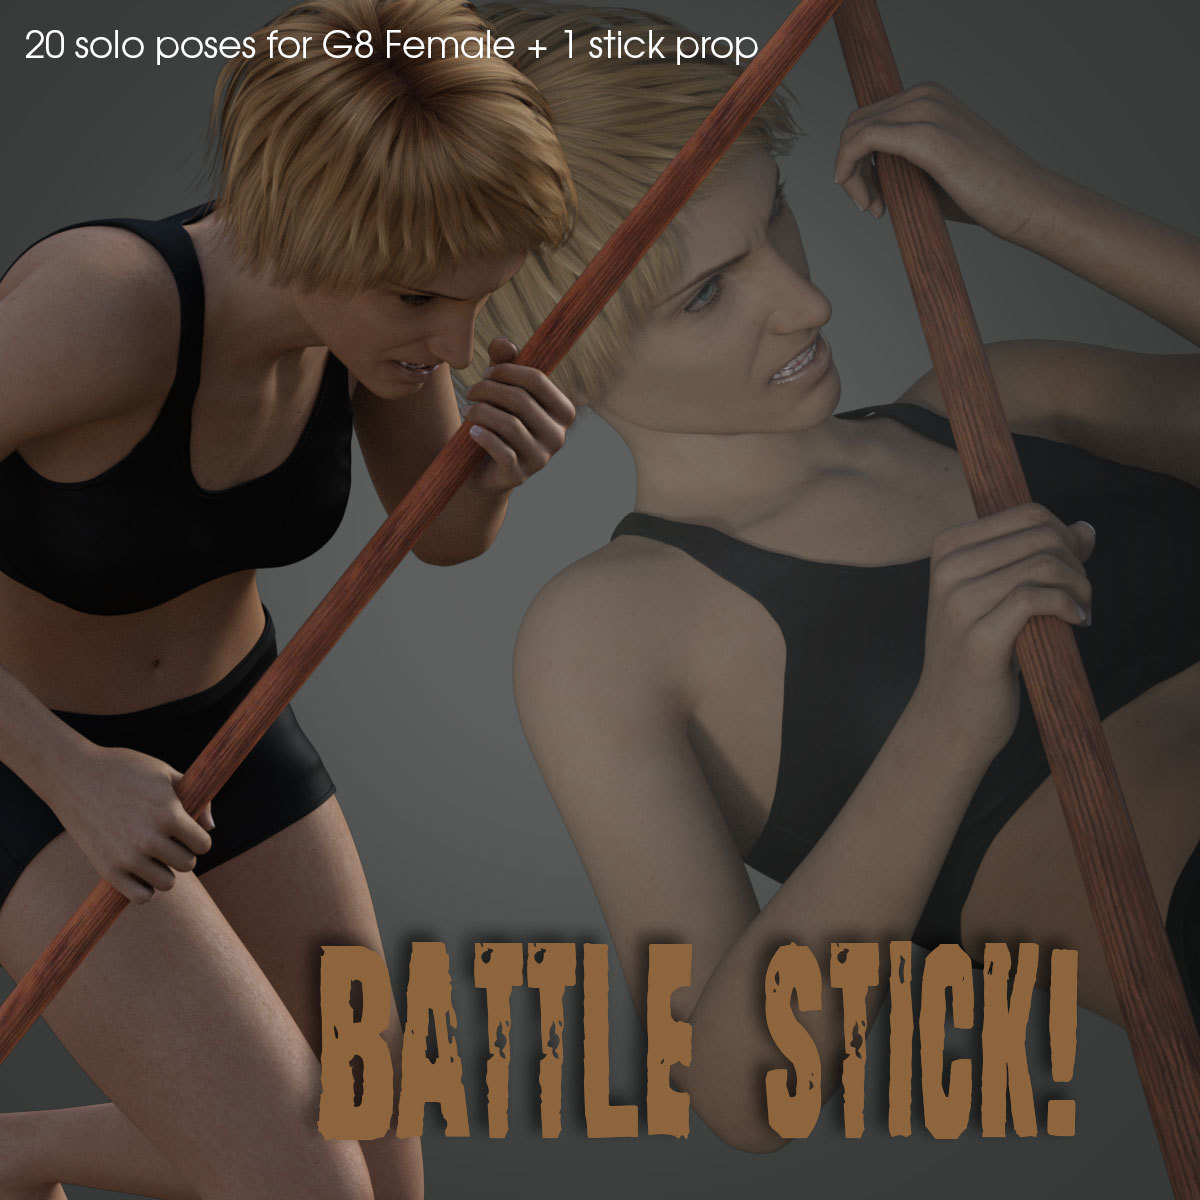 Battle Stick! for Genesis 8 Female by PainMD